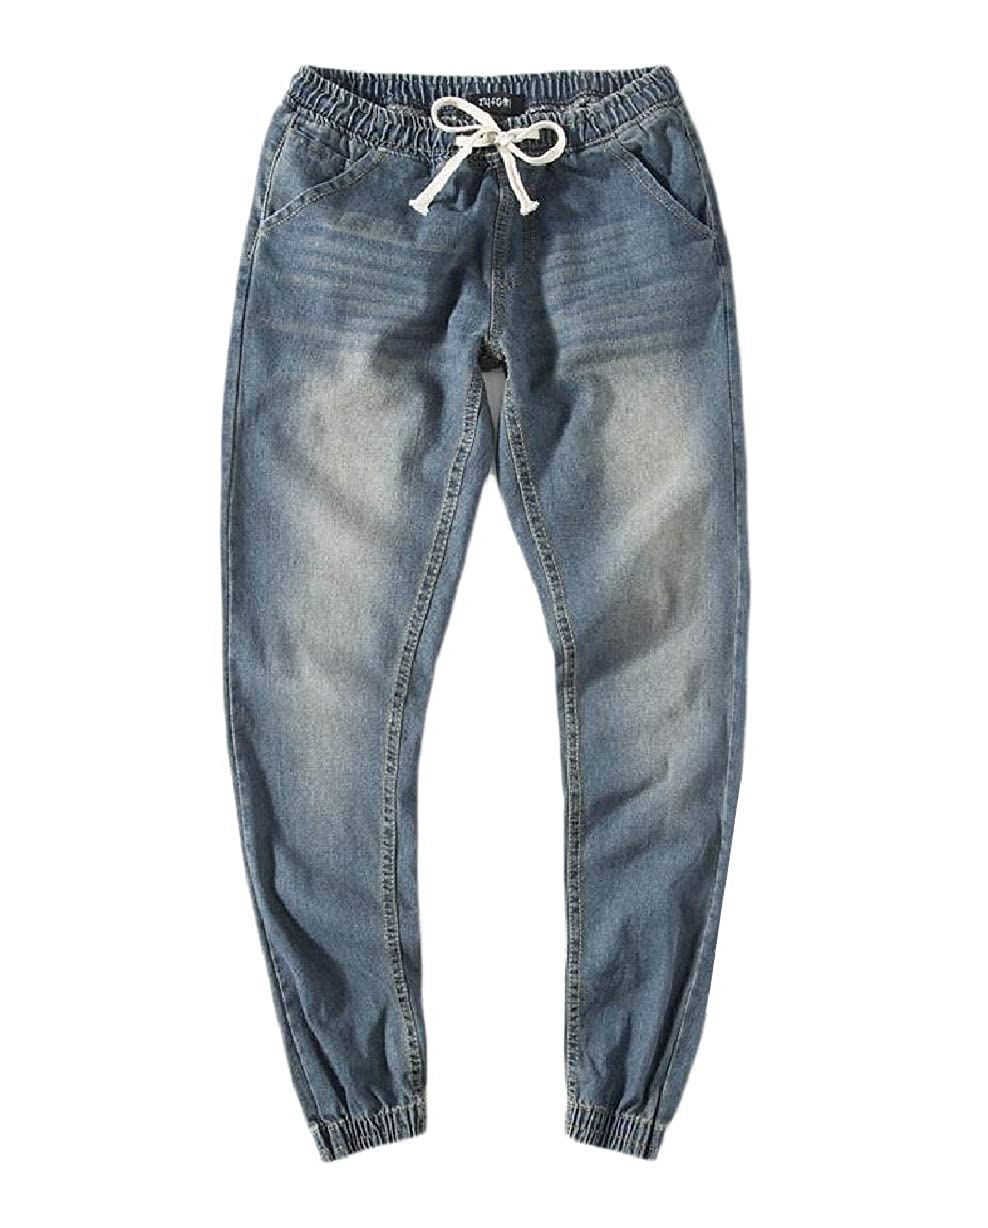 Unastar Mens Slim-Tapered Washed Elastic Waist Relaxed Fit Denim Jeans